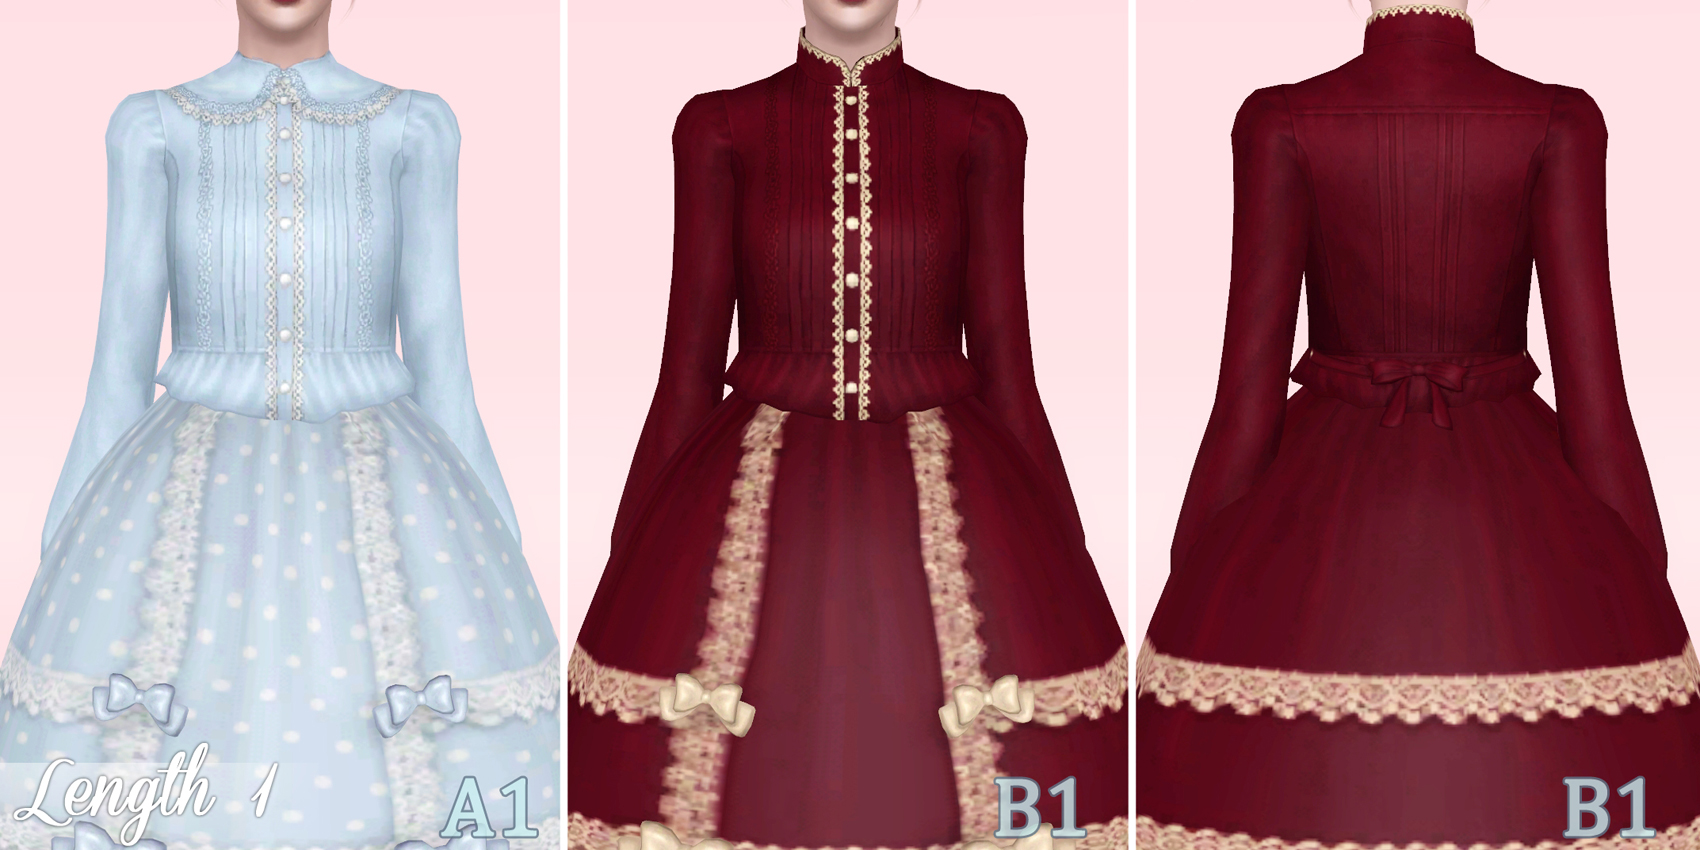 Sims 3 Long Sleeve Shirt Female - Ortsplanungsrevision Stadt